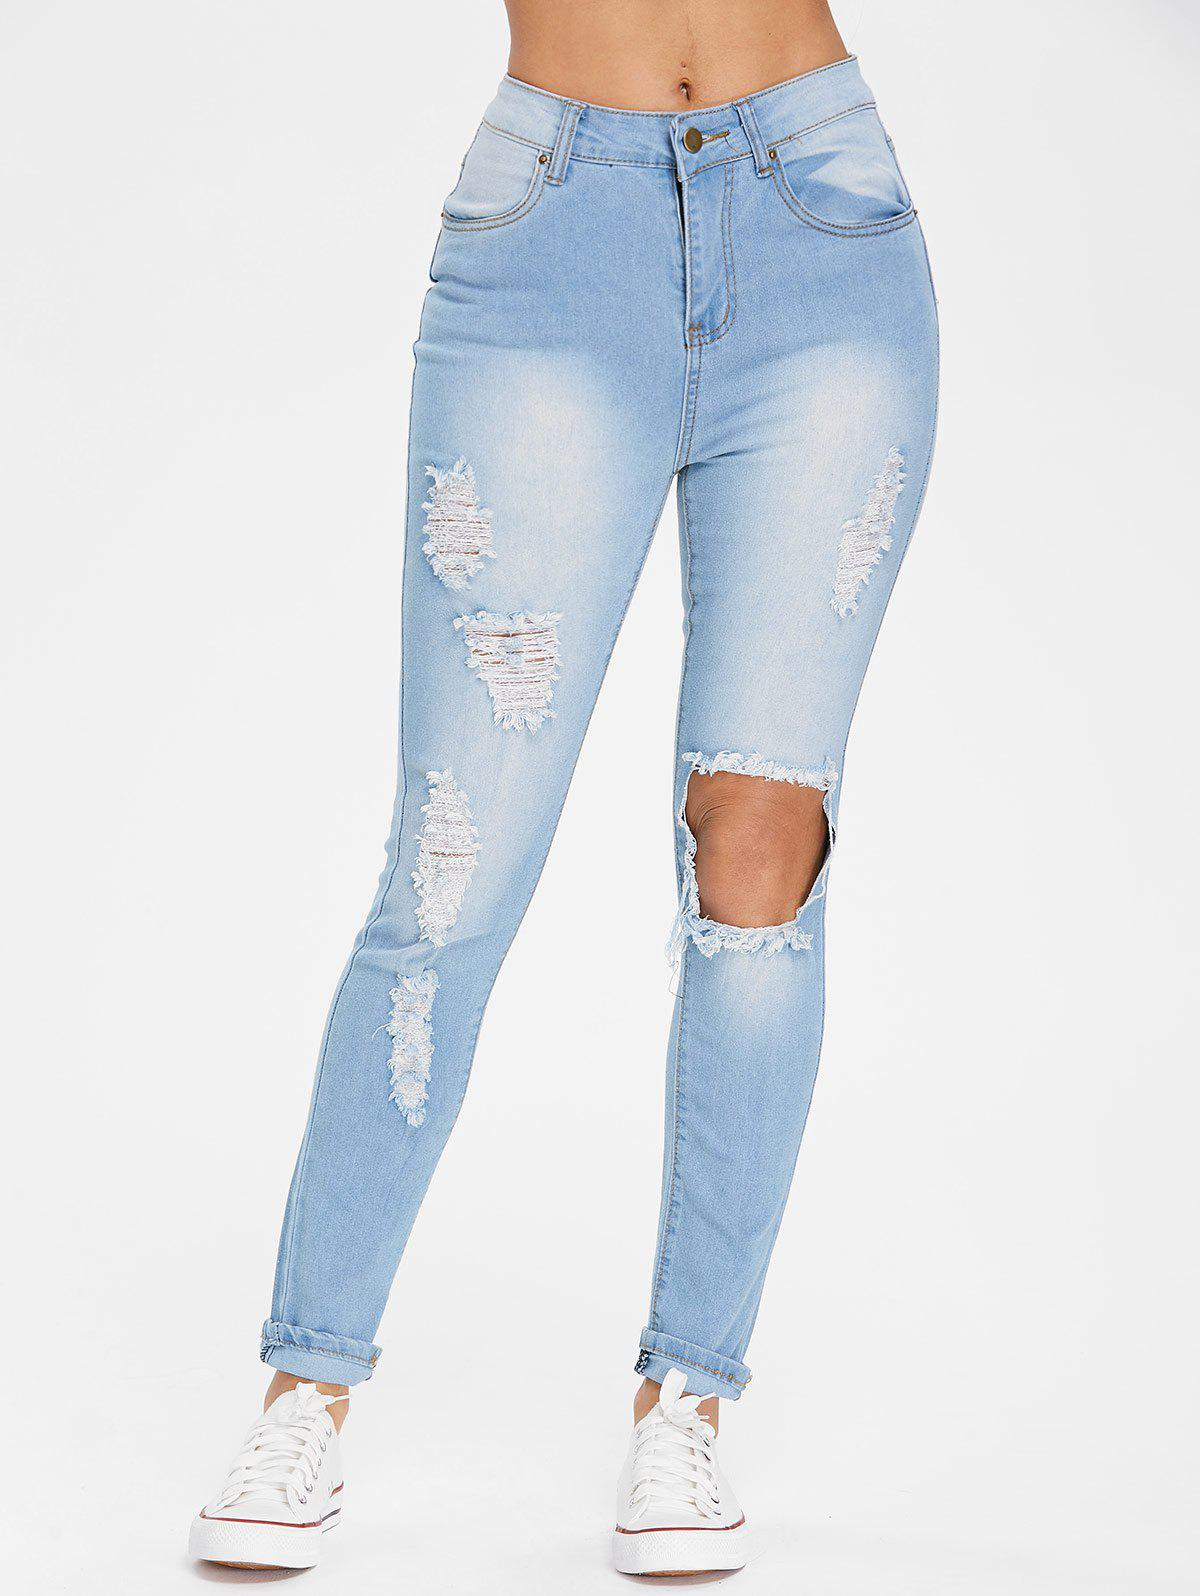 Shop High Waisted Torn Jeans